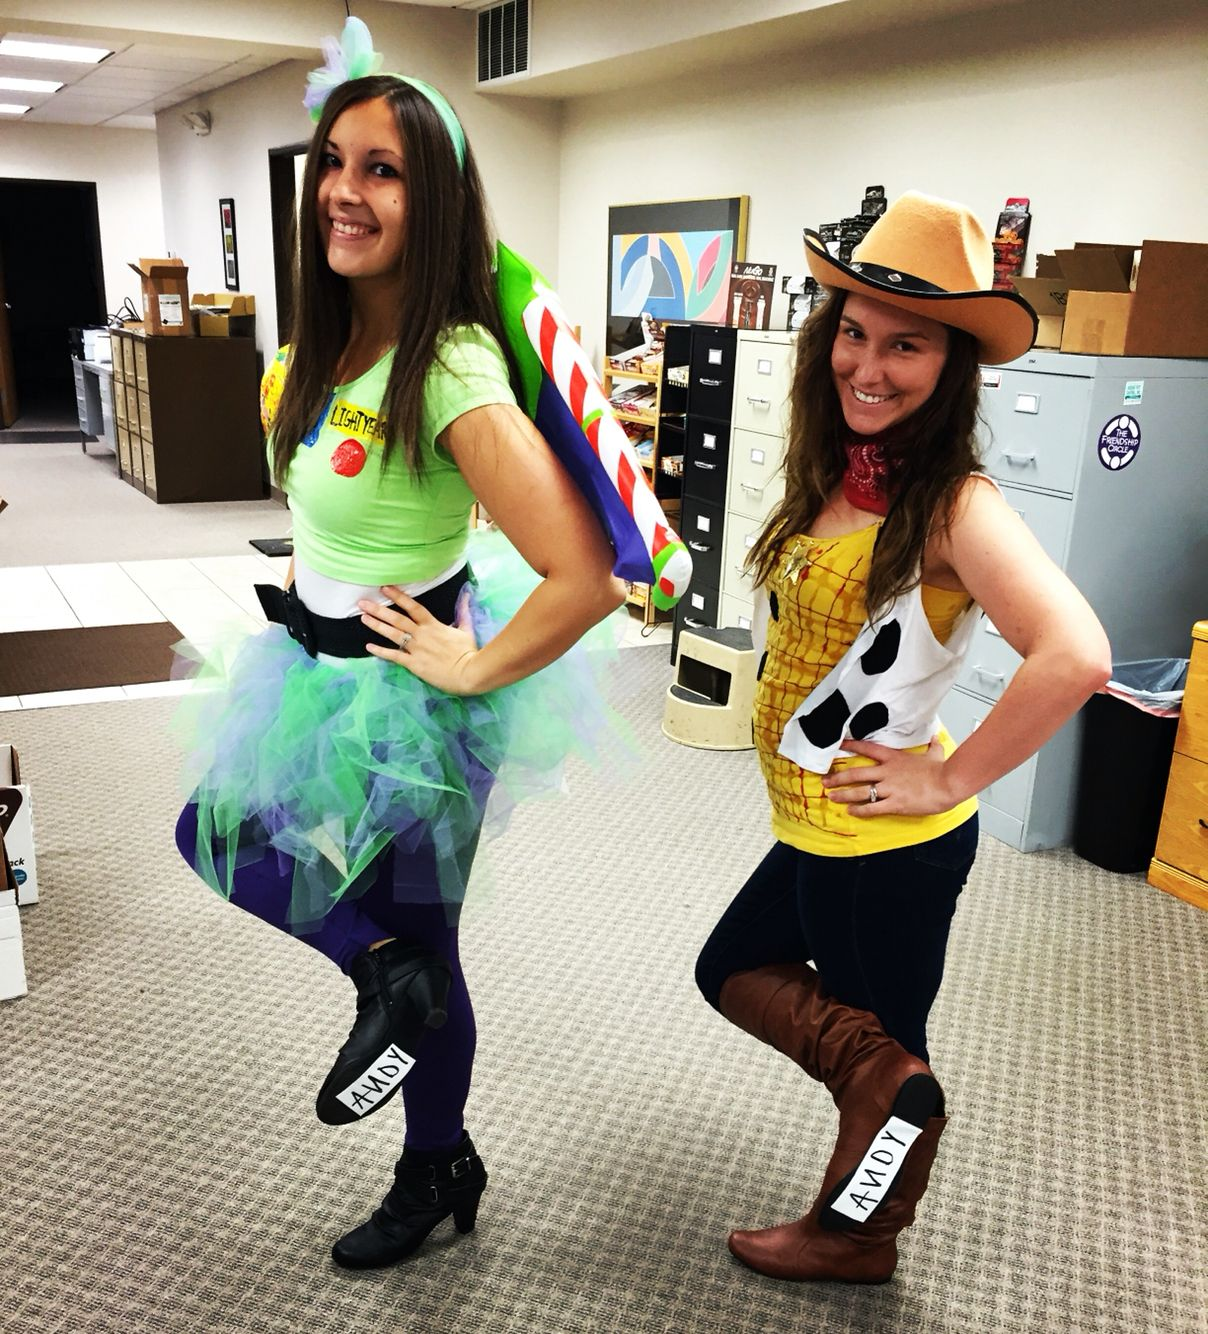 buzz lightyear and woody toy story woman women adult